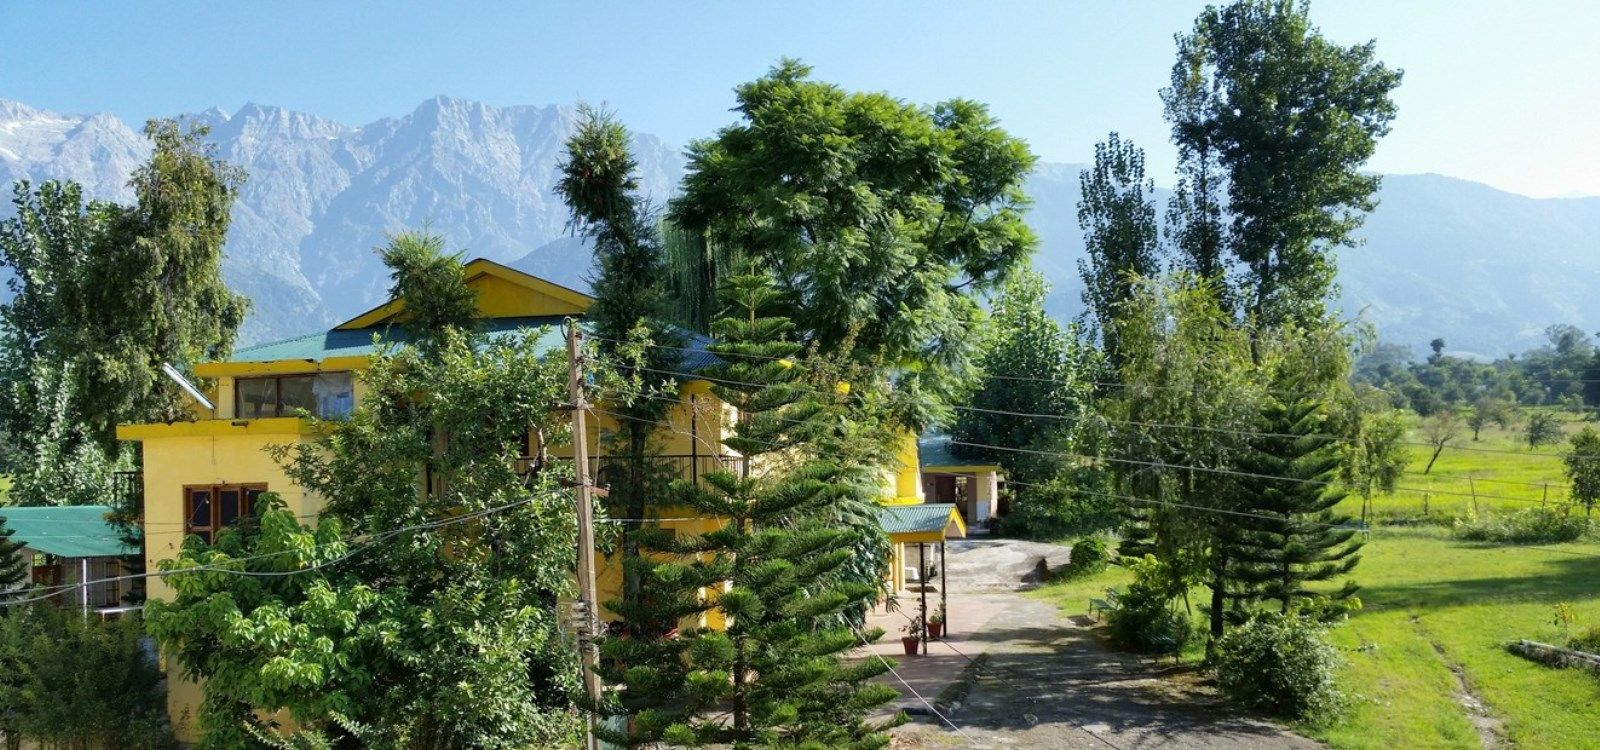 dharamsala yoga teacher training venue